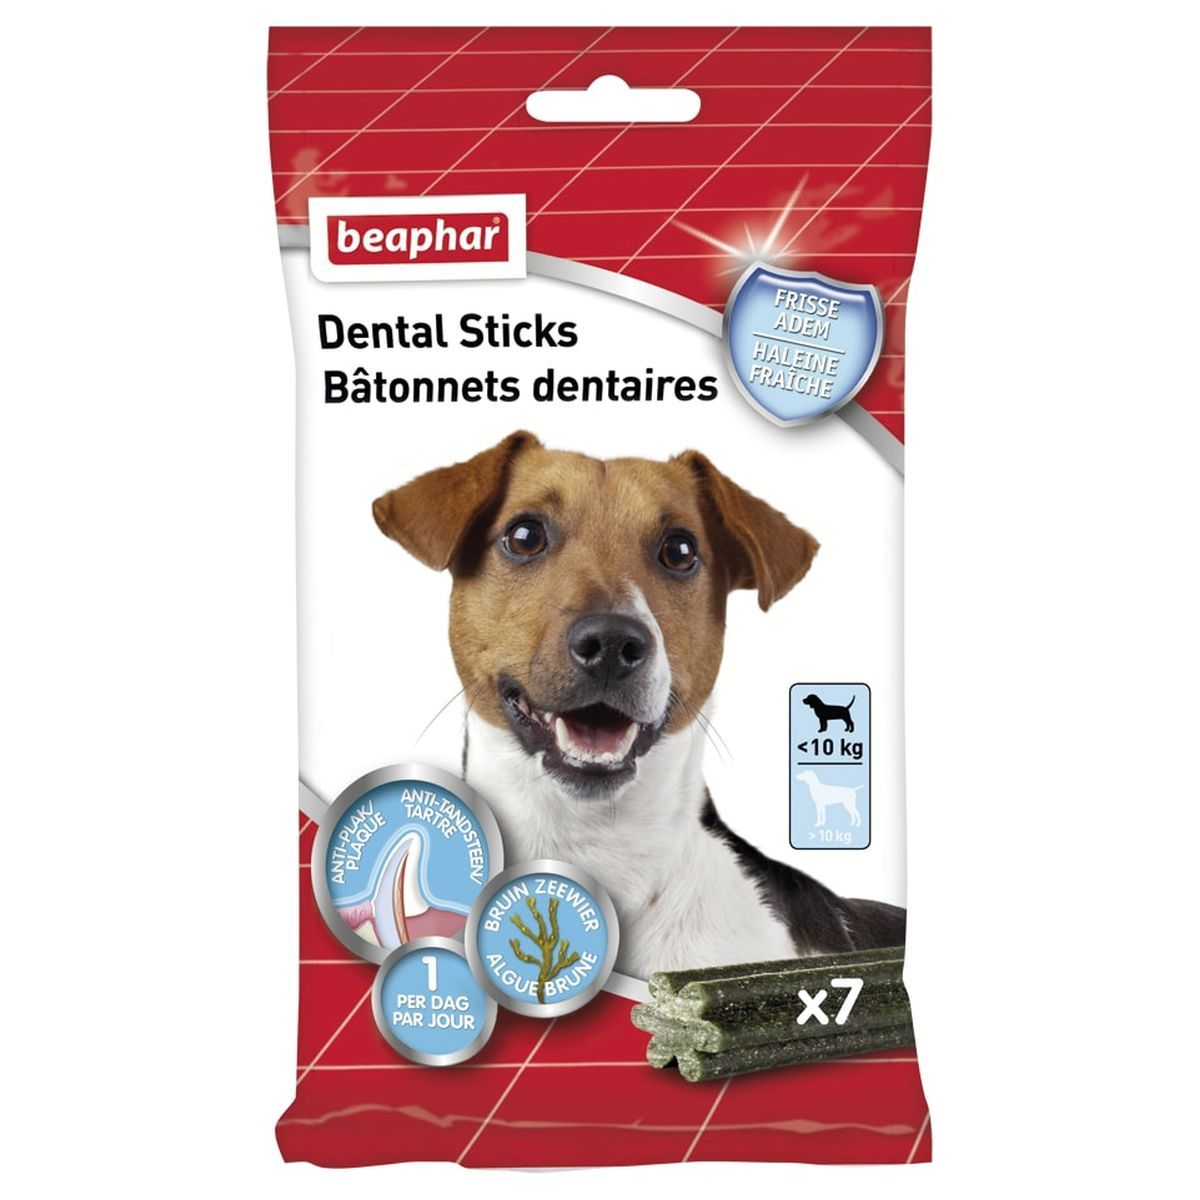 Beaphar Dental Sticks kleine hond 1 x 7 sticks